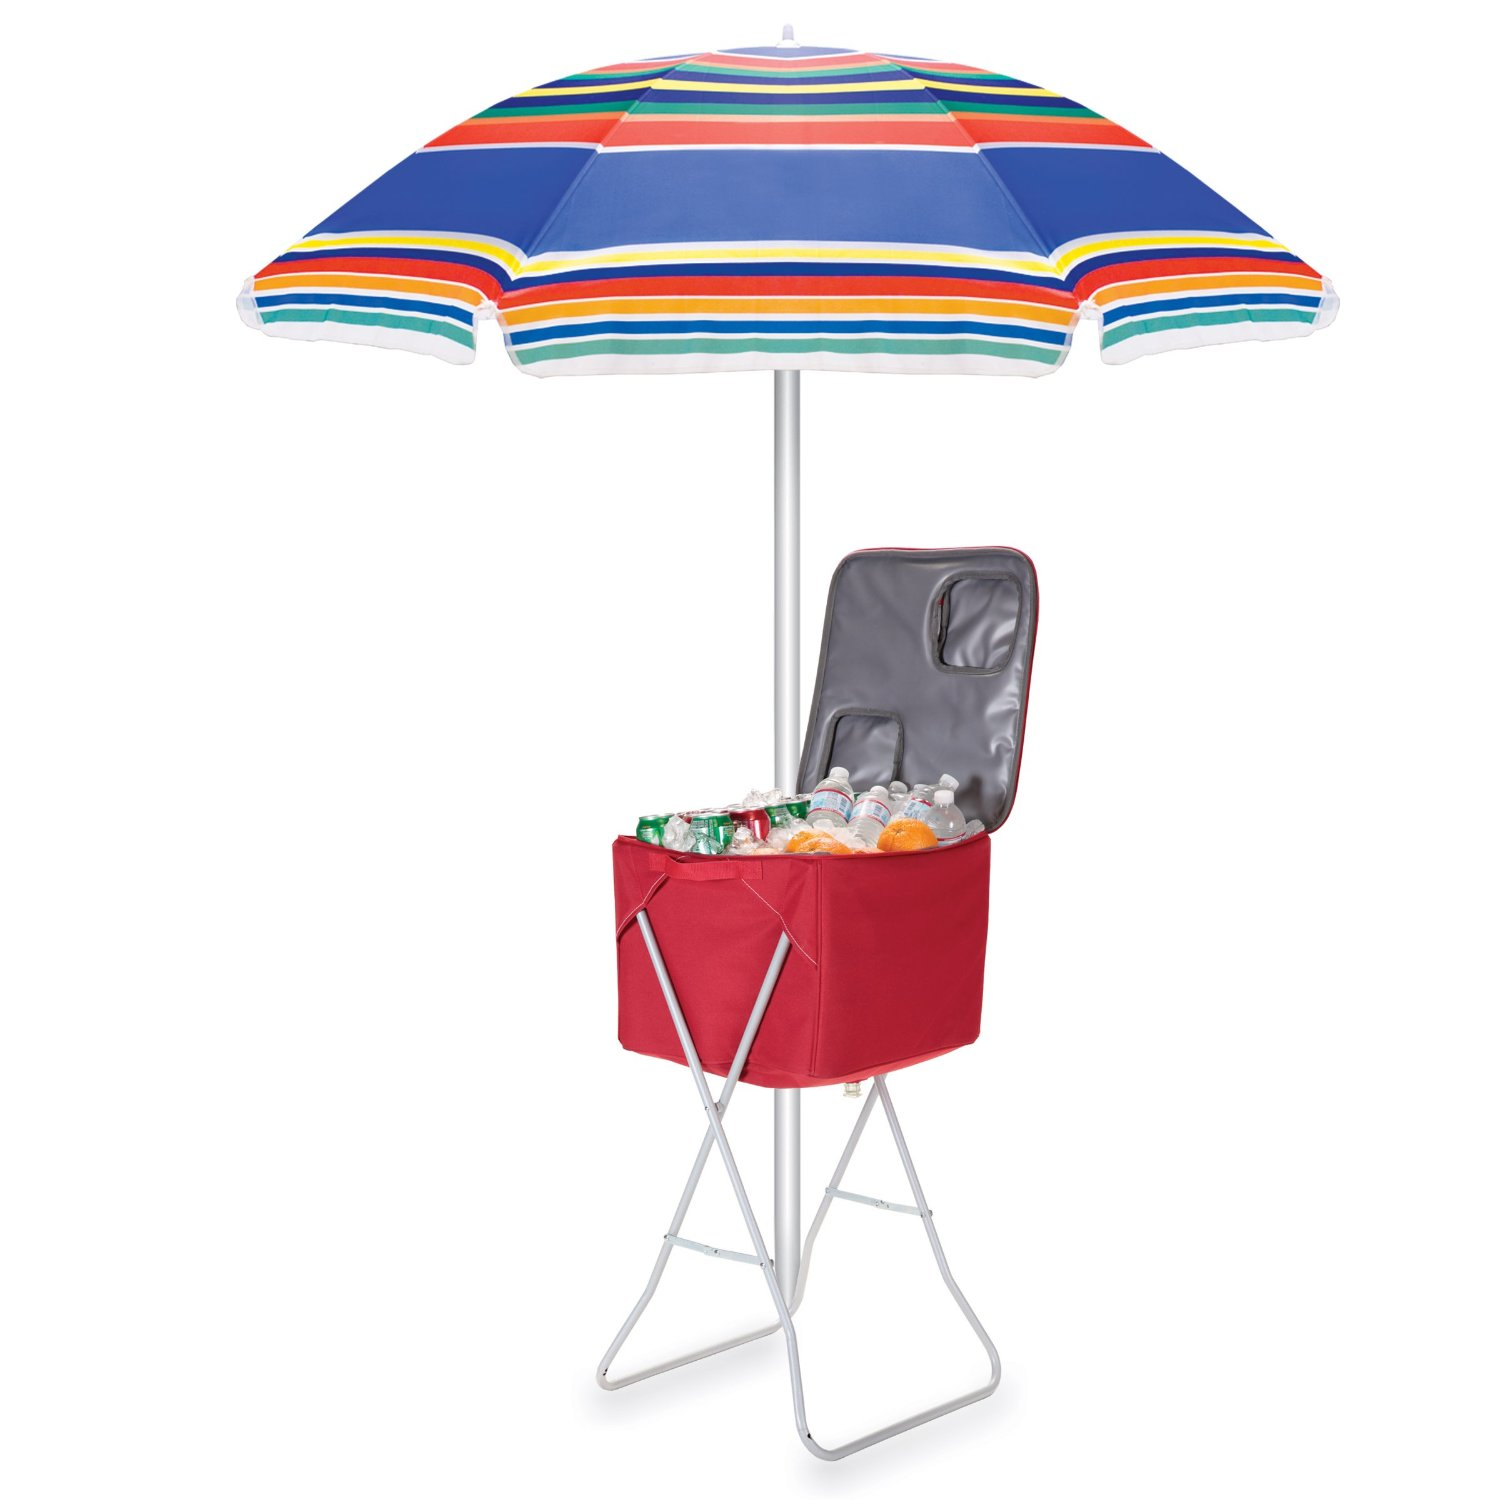 Picnic Time Outdoor Umbrella, Multi-Color Stripe